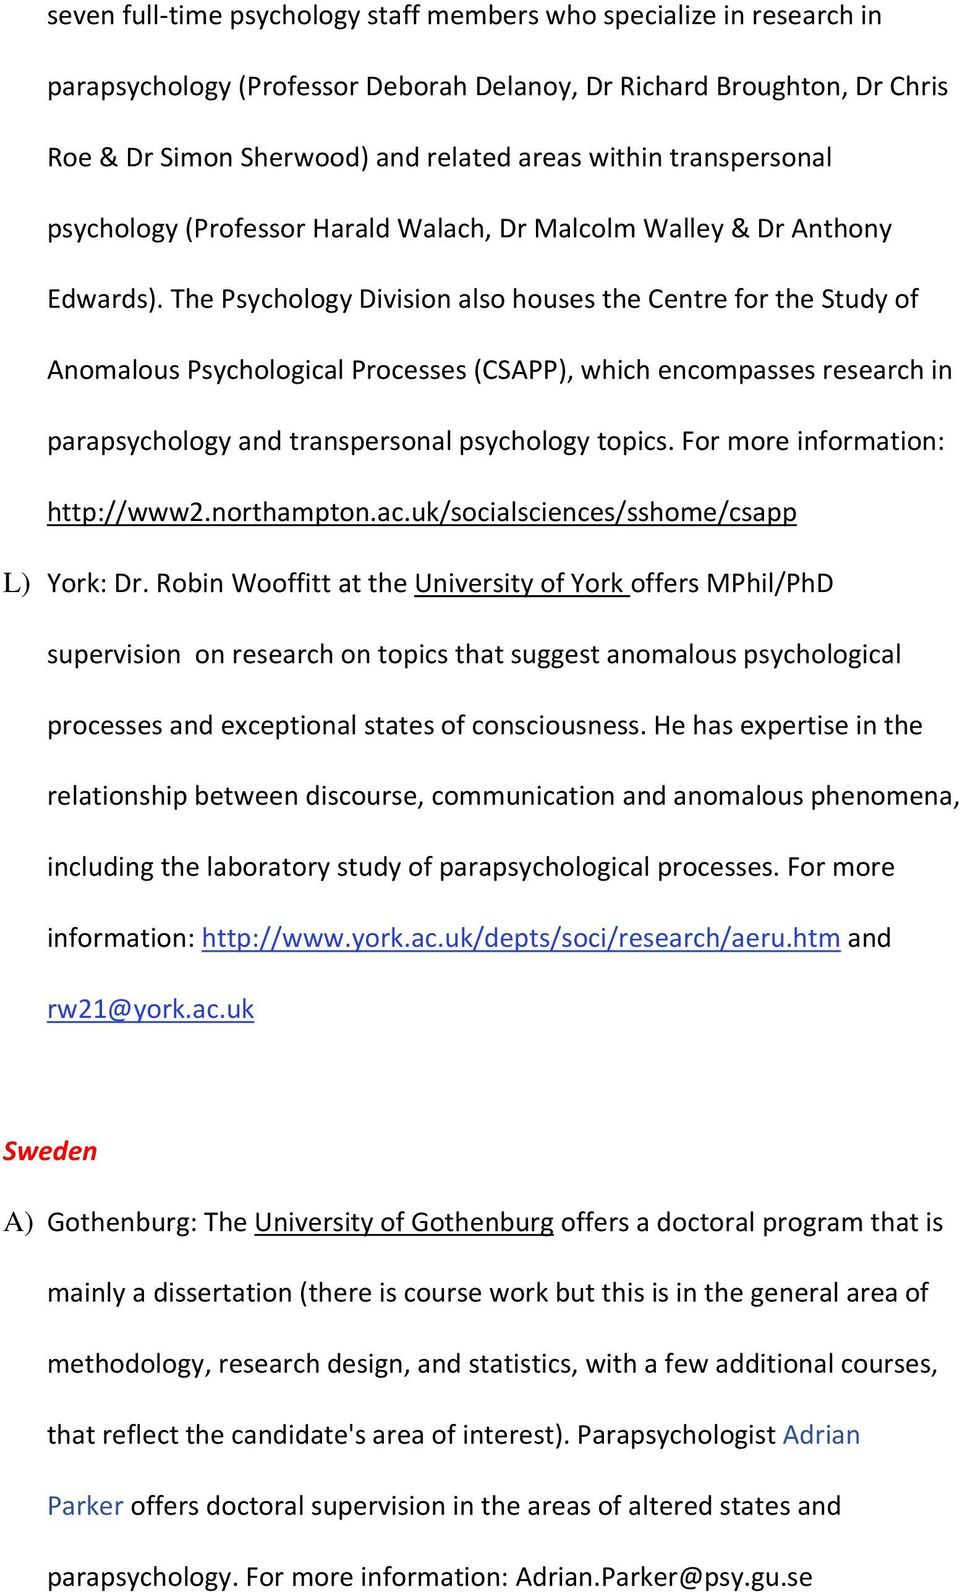 The Psychology Division also houses the Centre for the Study of Anomalous Psychological Processes (CSAPP), which encompasses research in parapsychology and transpersonal psychology topics.